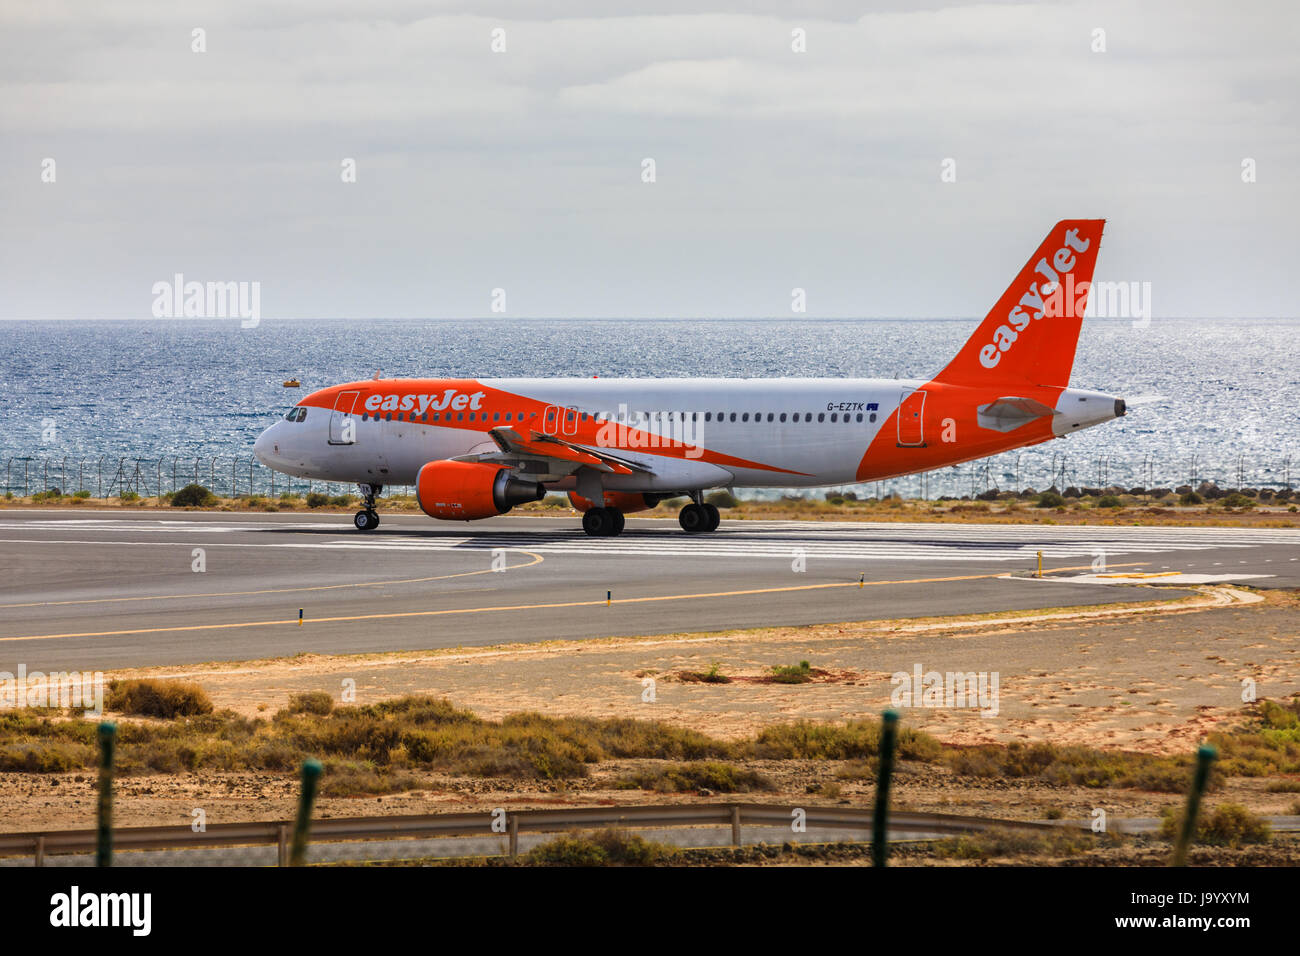 ARECIFE, SPAIN - APRIL, 15 2017: AirBus A320 - 200 of easyjet ready to take off at Lanzarote Airport - Stock Image